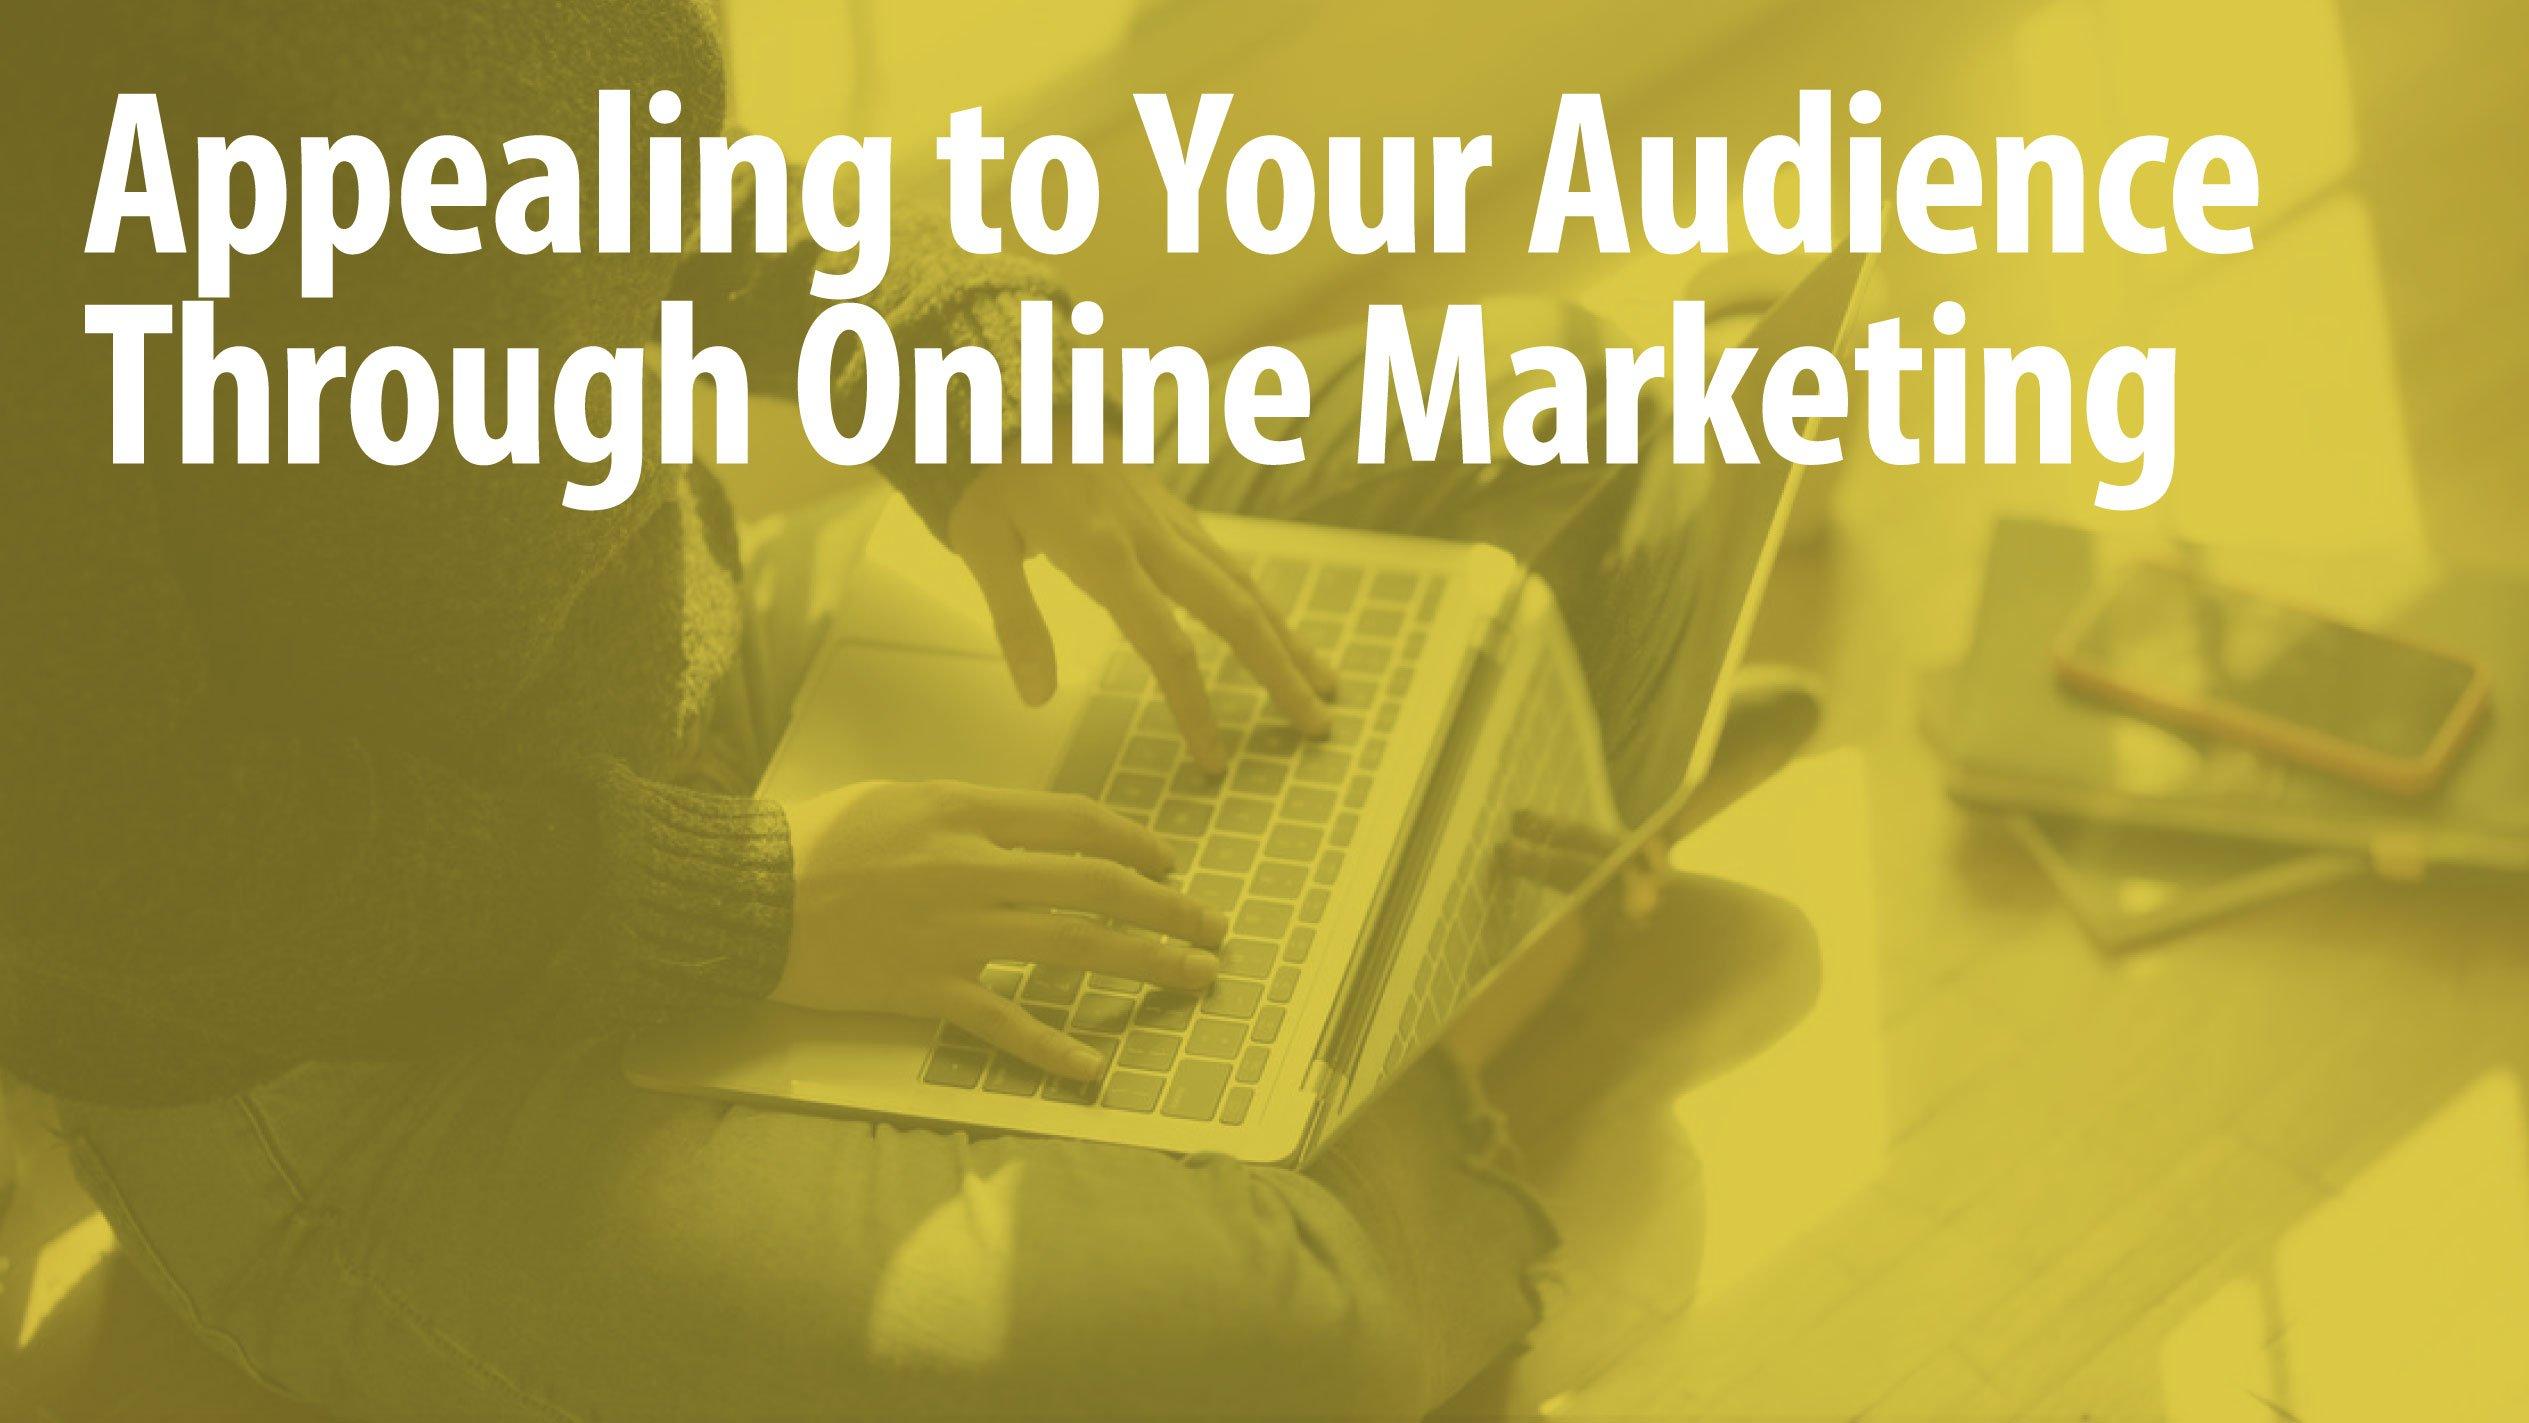 Appealing to Your Audience Through Online Marketing